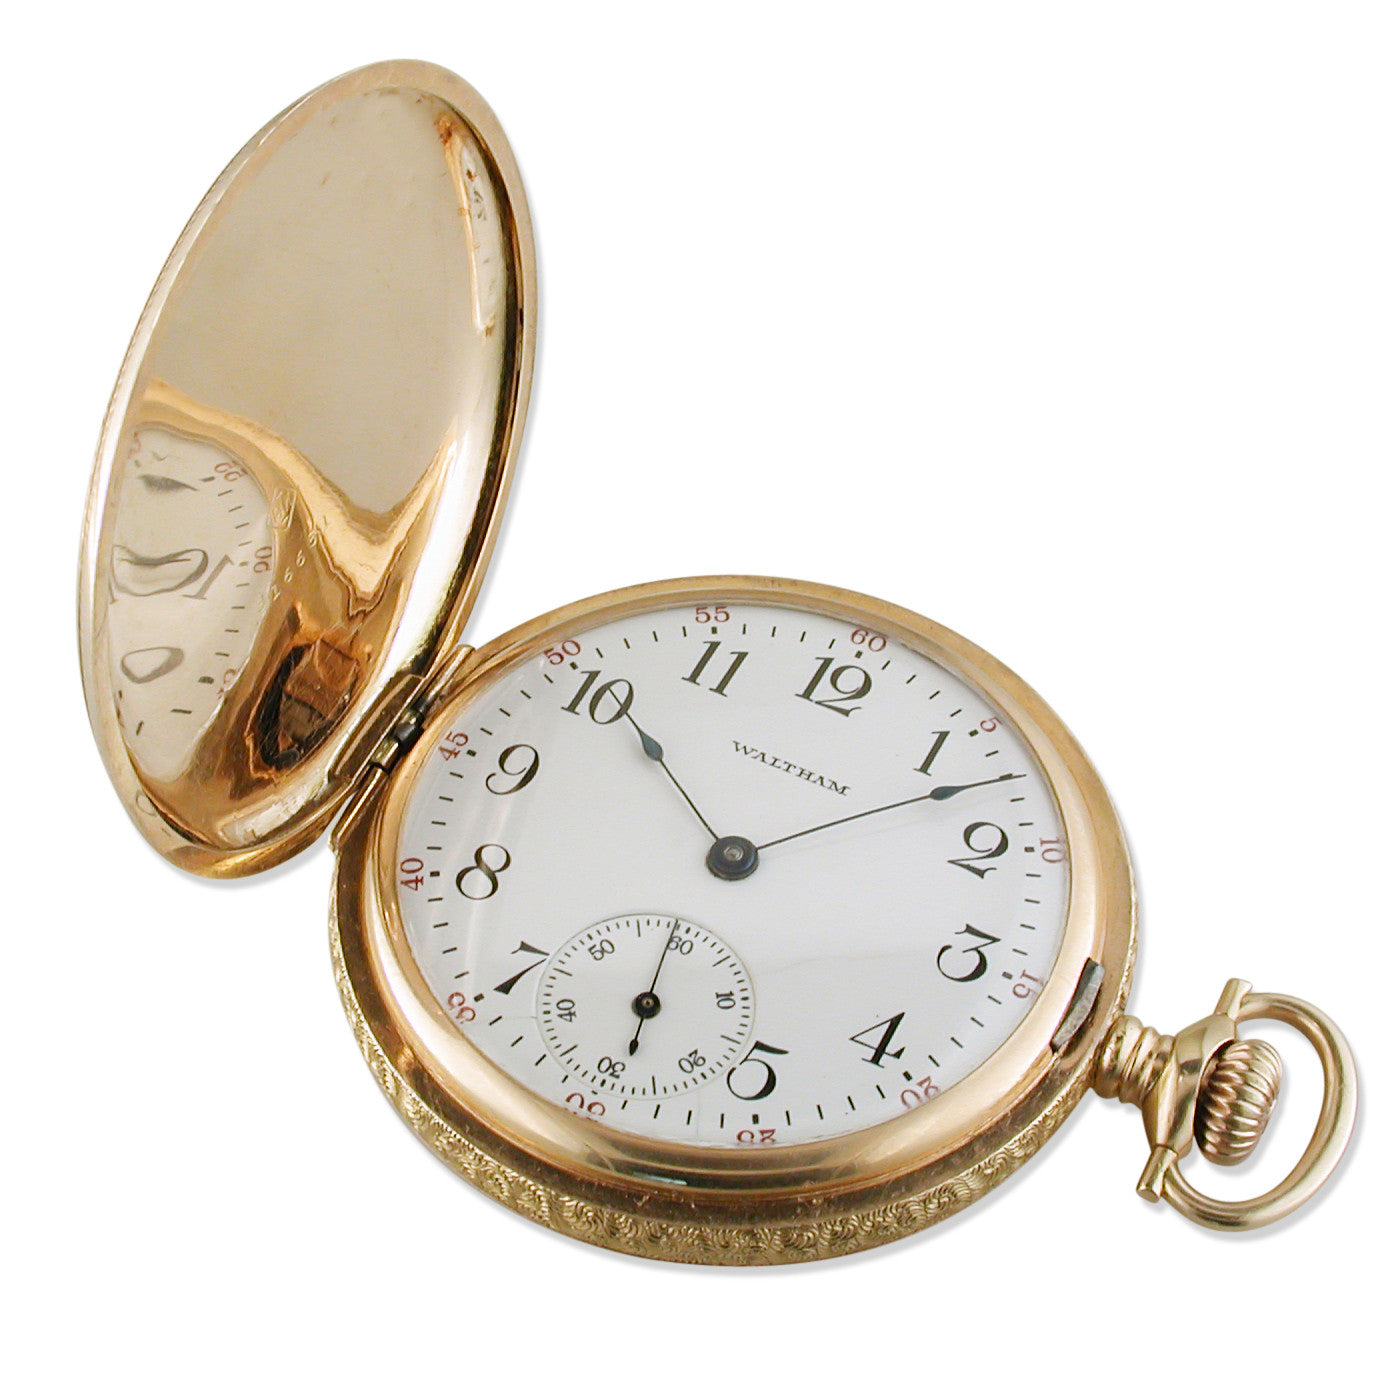 fd493bb1648394 Pre-owned Waltham 14K Yellow Gold Pocket Watch Hunter 16s Year 1913 ...